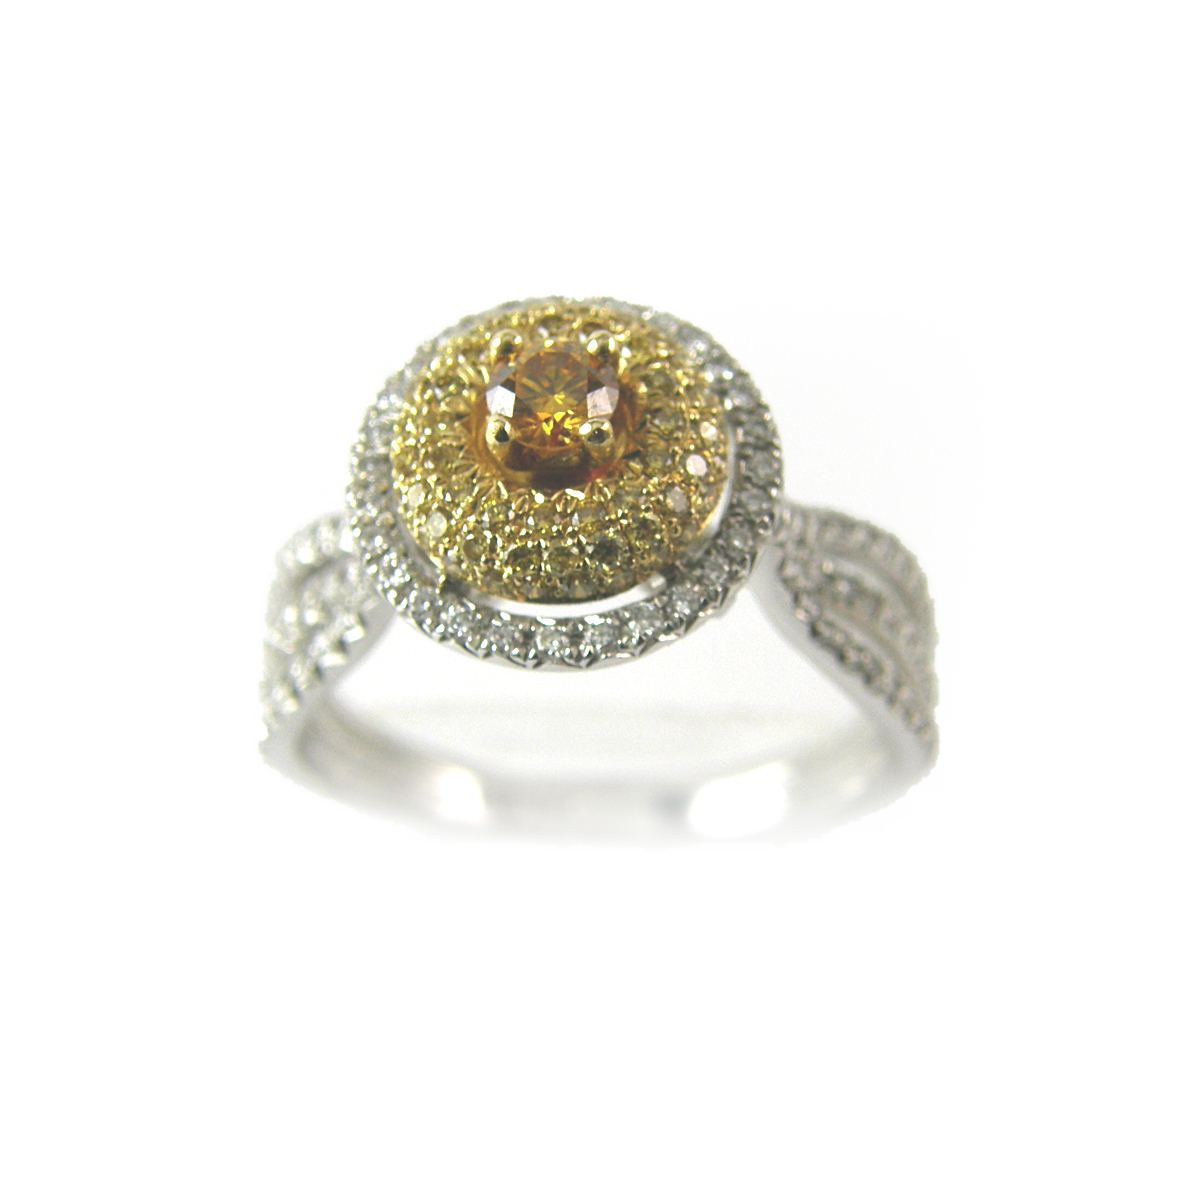 18 Karat Two Tone White Yellow and Cognac Diamond Ring